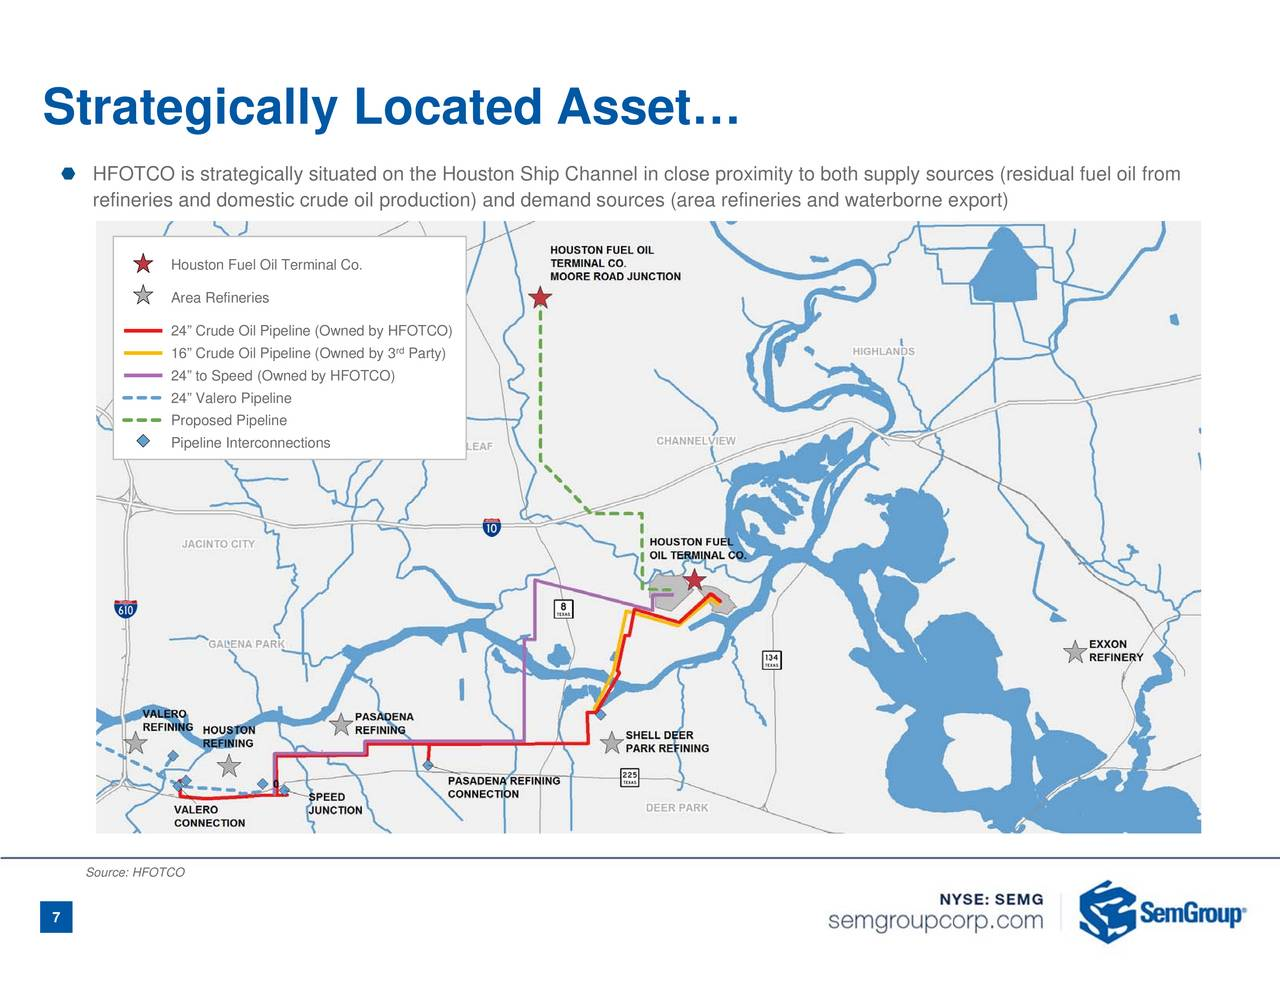 SemGroup SEMG Acquires Houston Fuel Oil Terminal Company For - Houston terminal map